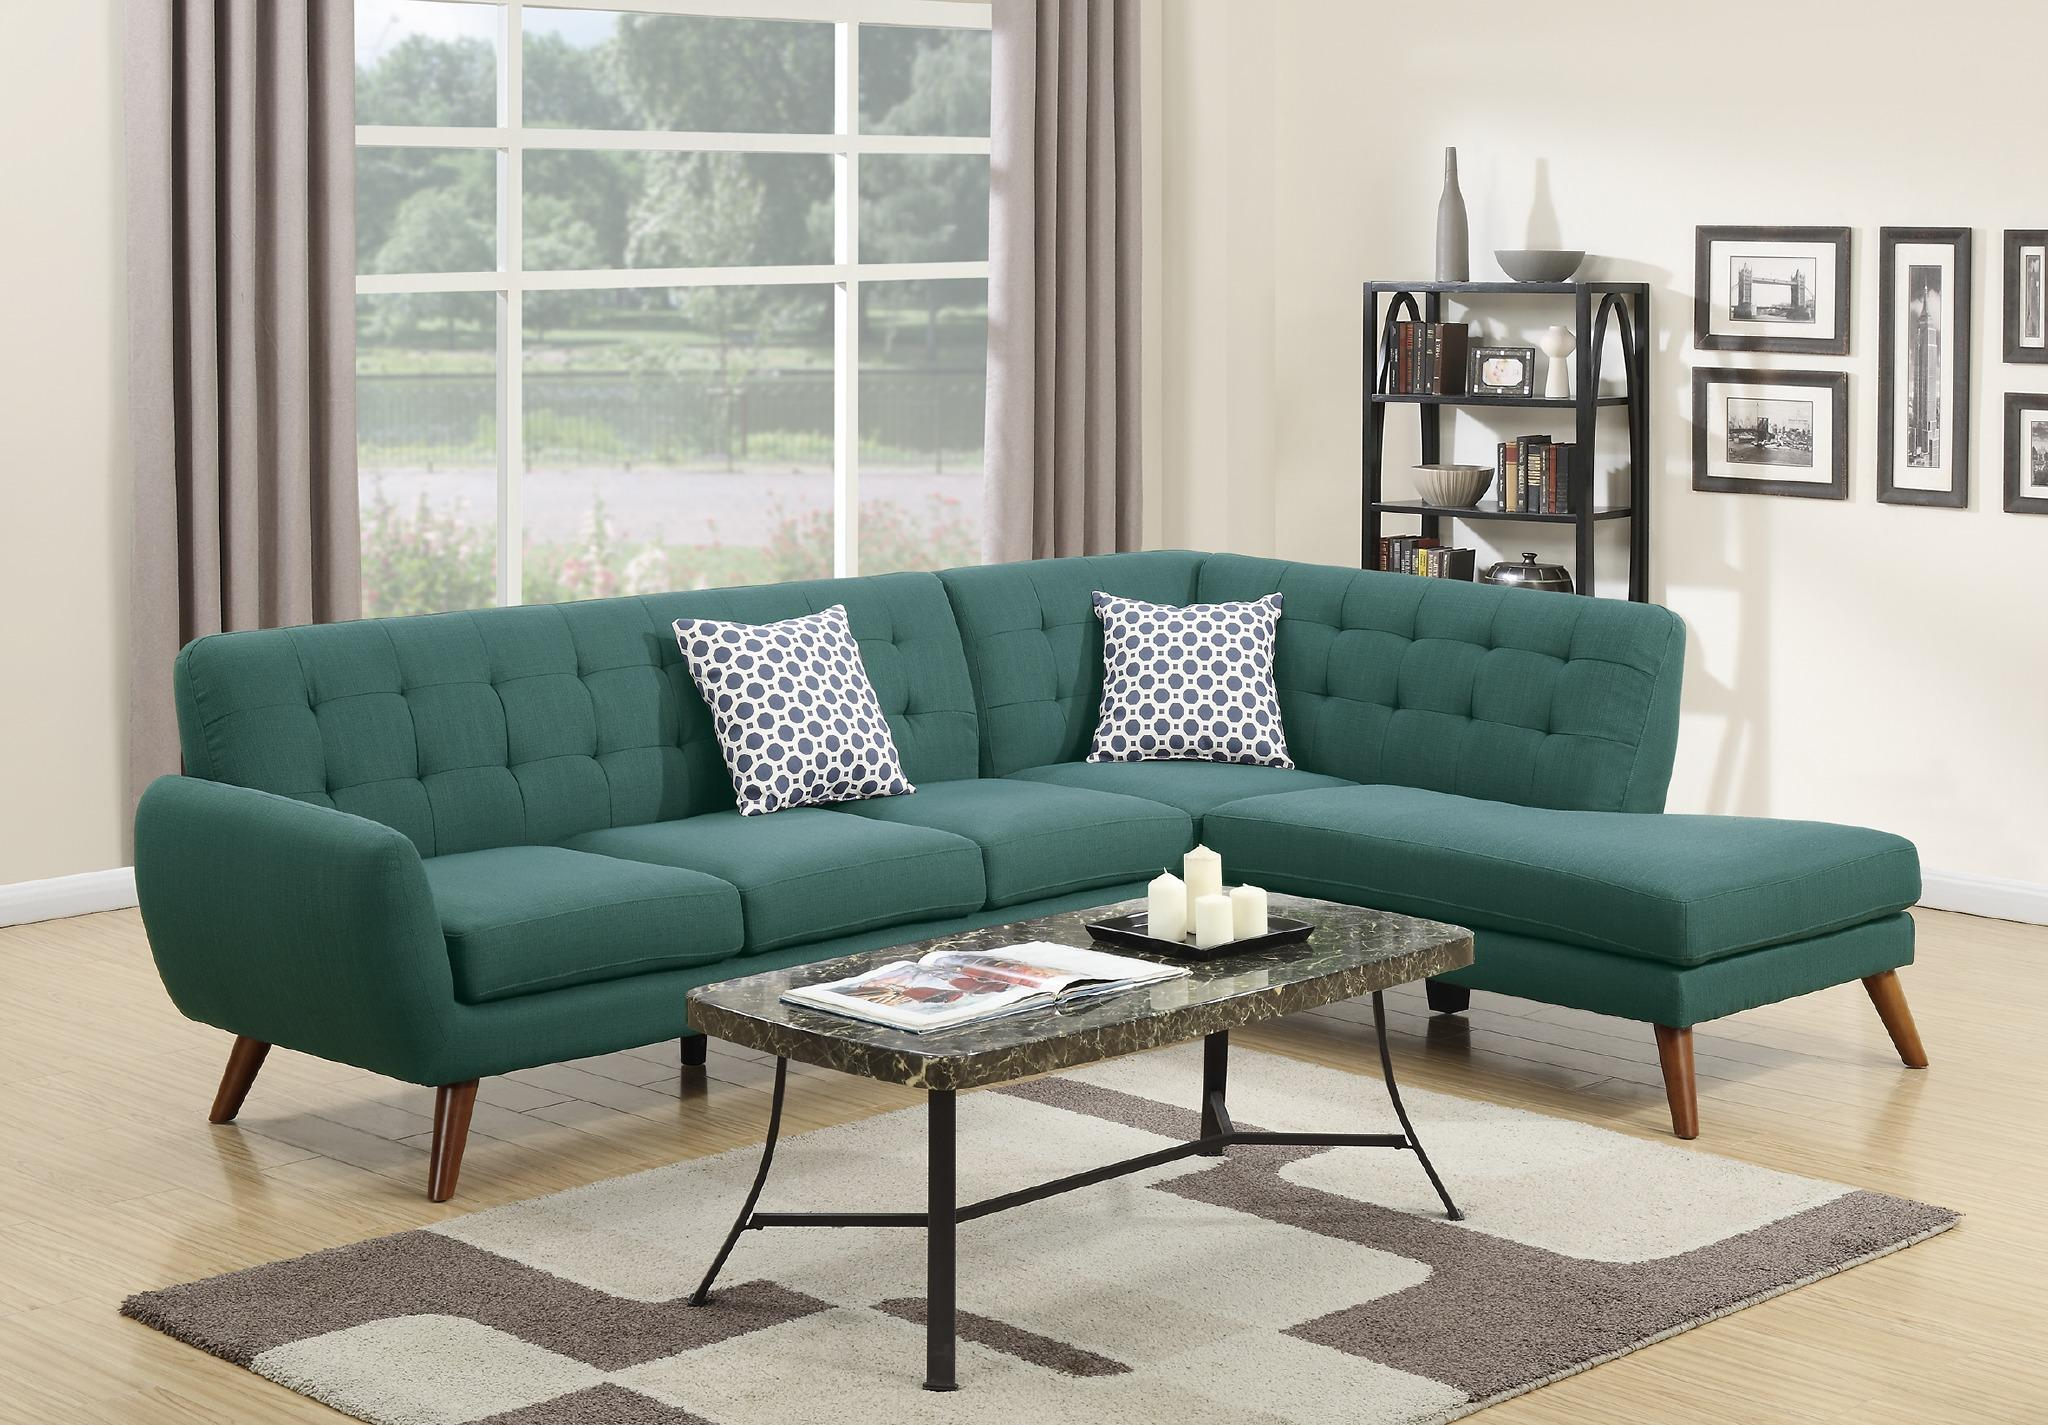 Modern Retro Sectional Sofa, Laguna